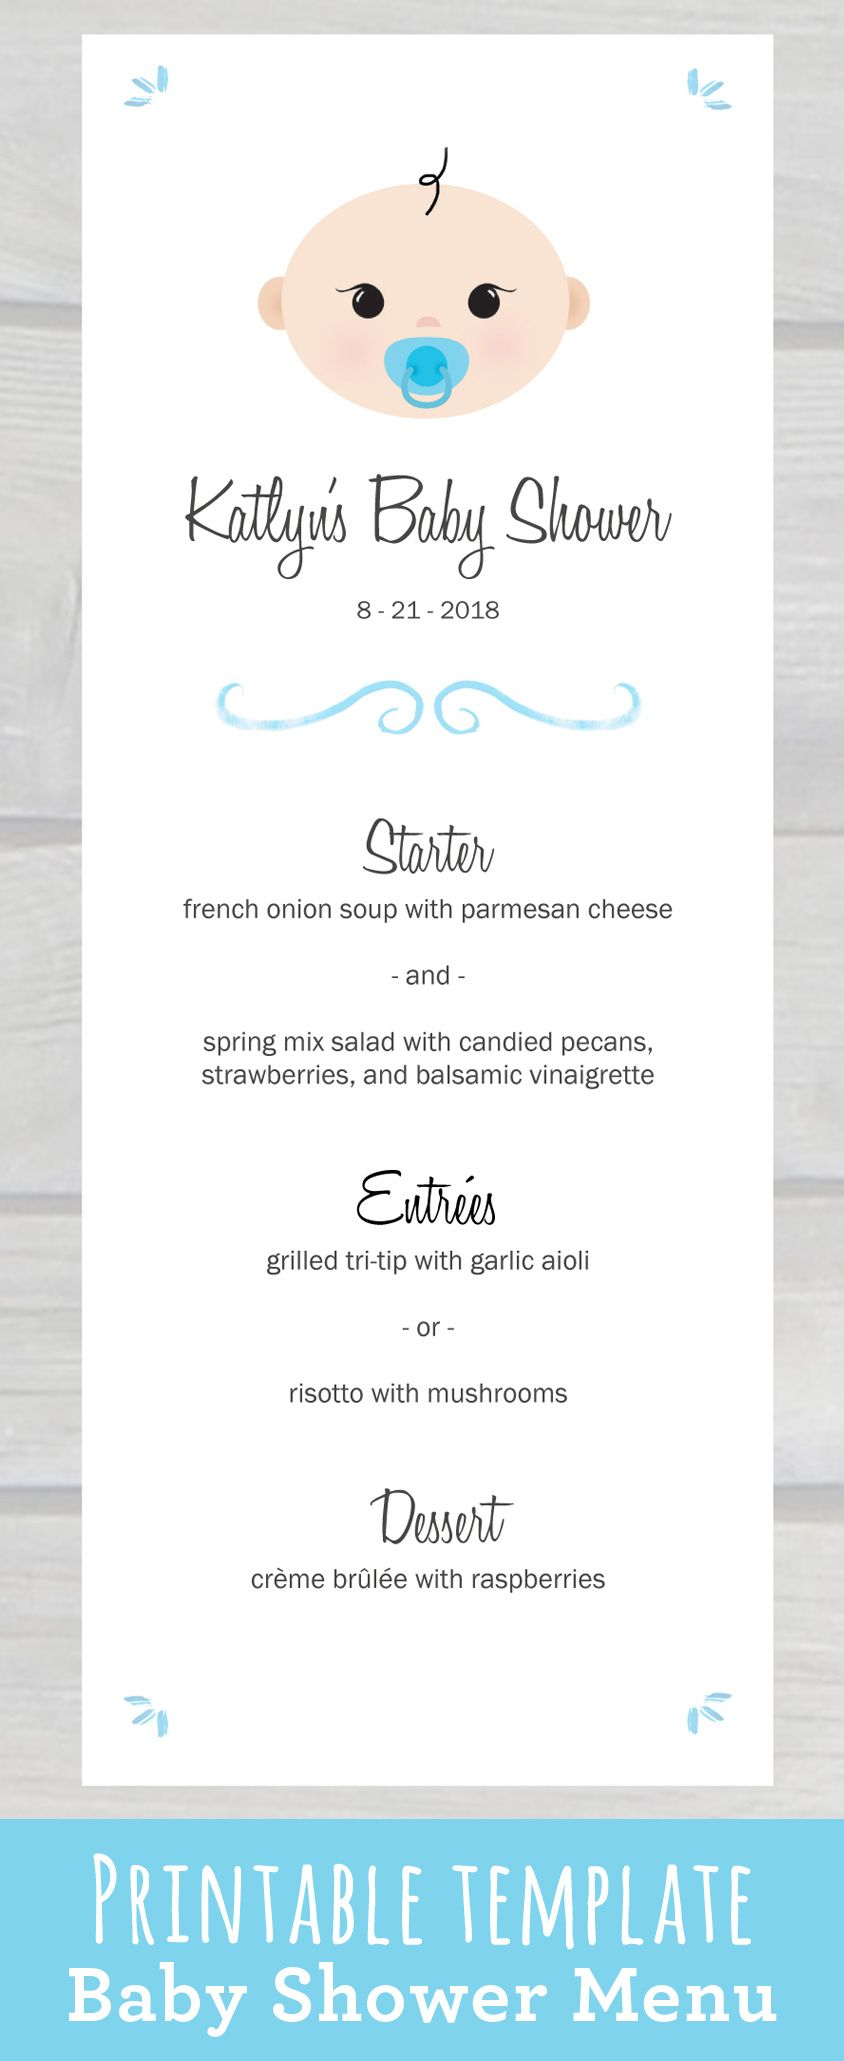 use this cute baby shower menu template pdf to edit print your own